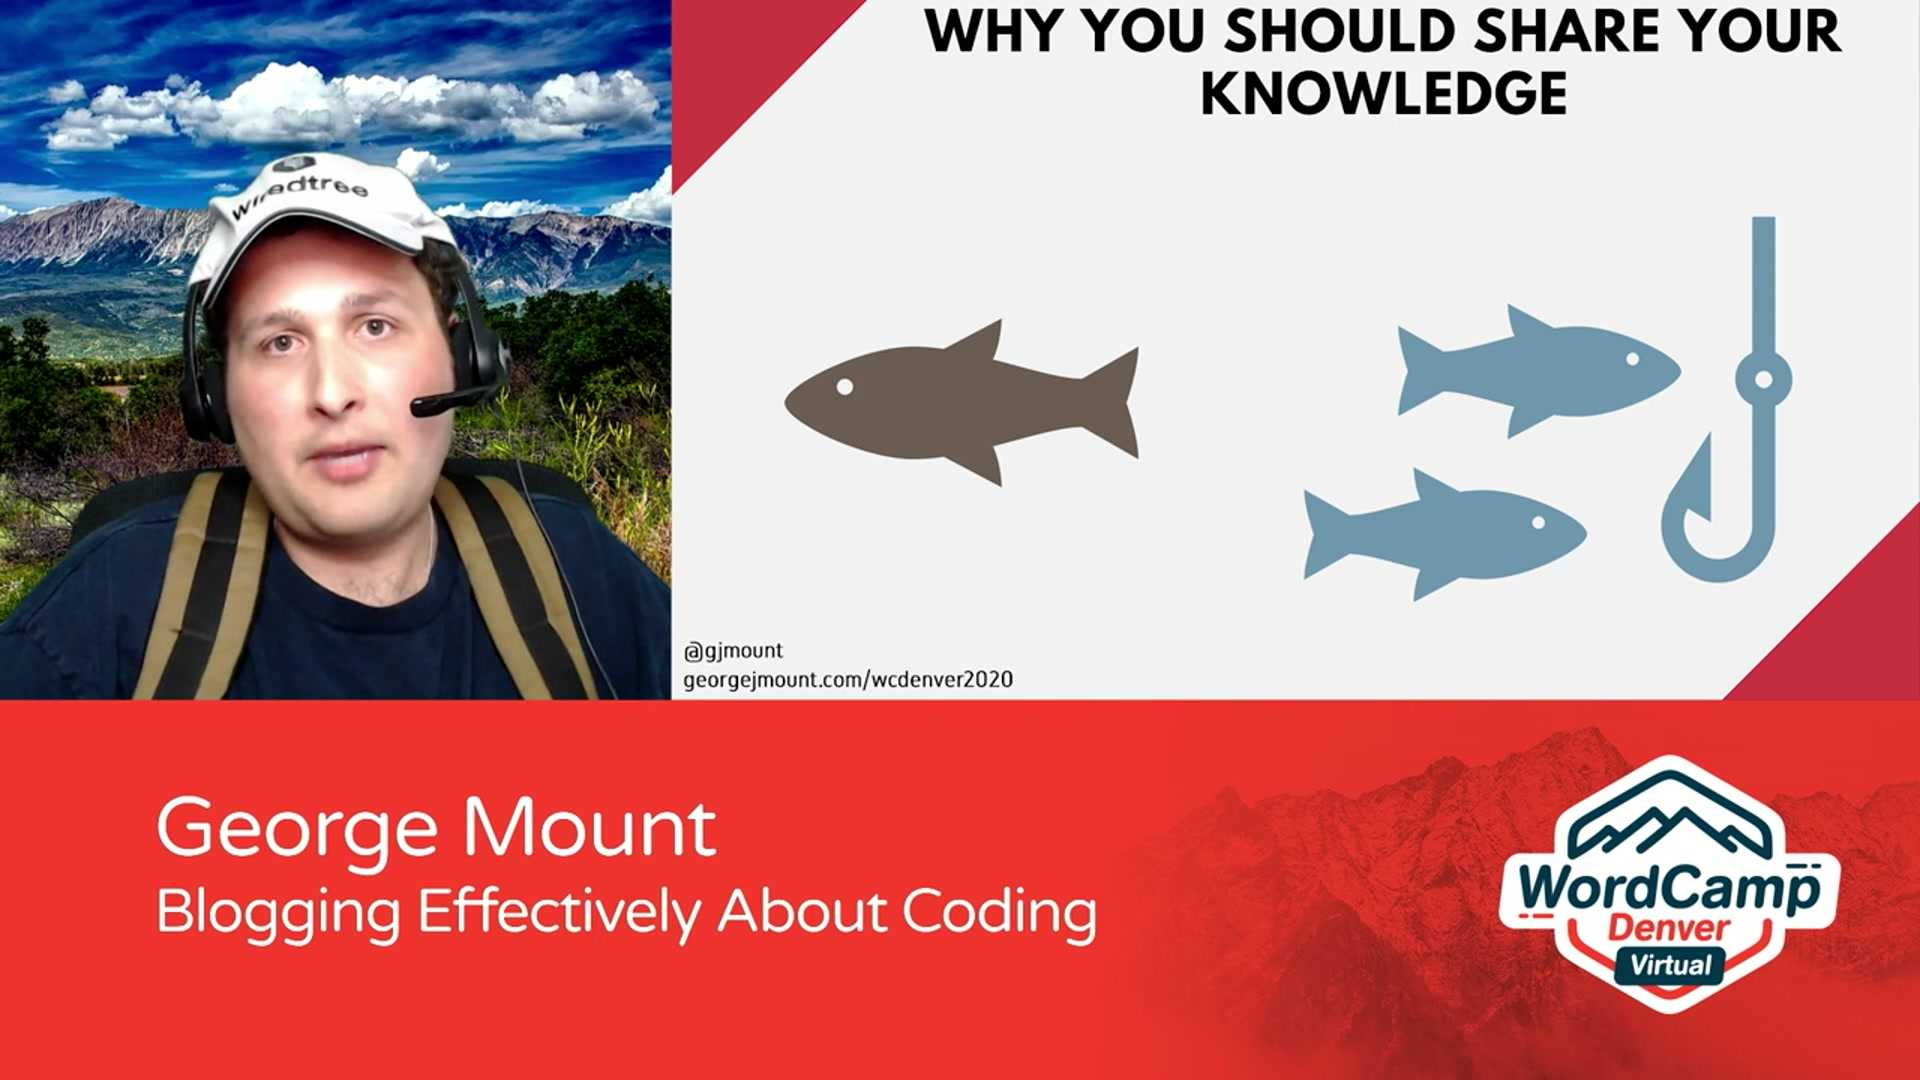 George Mount: Blogging Effectively About Coding